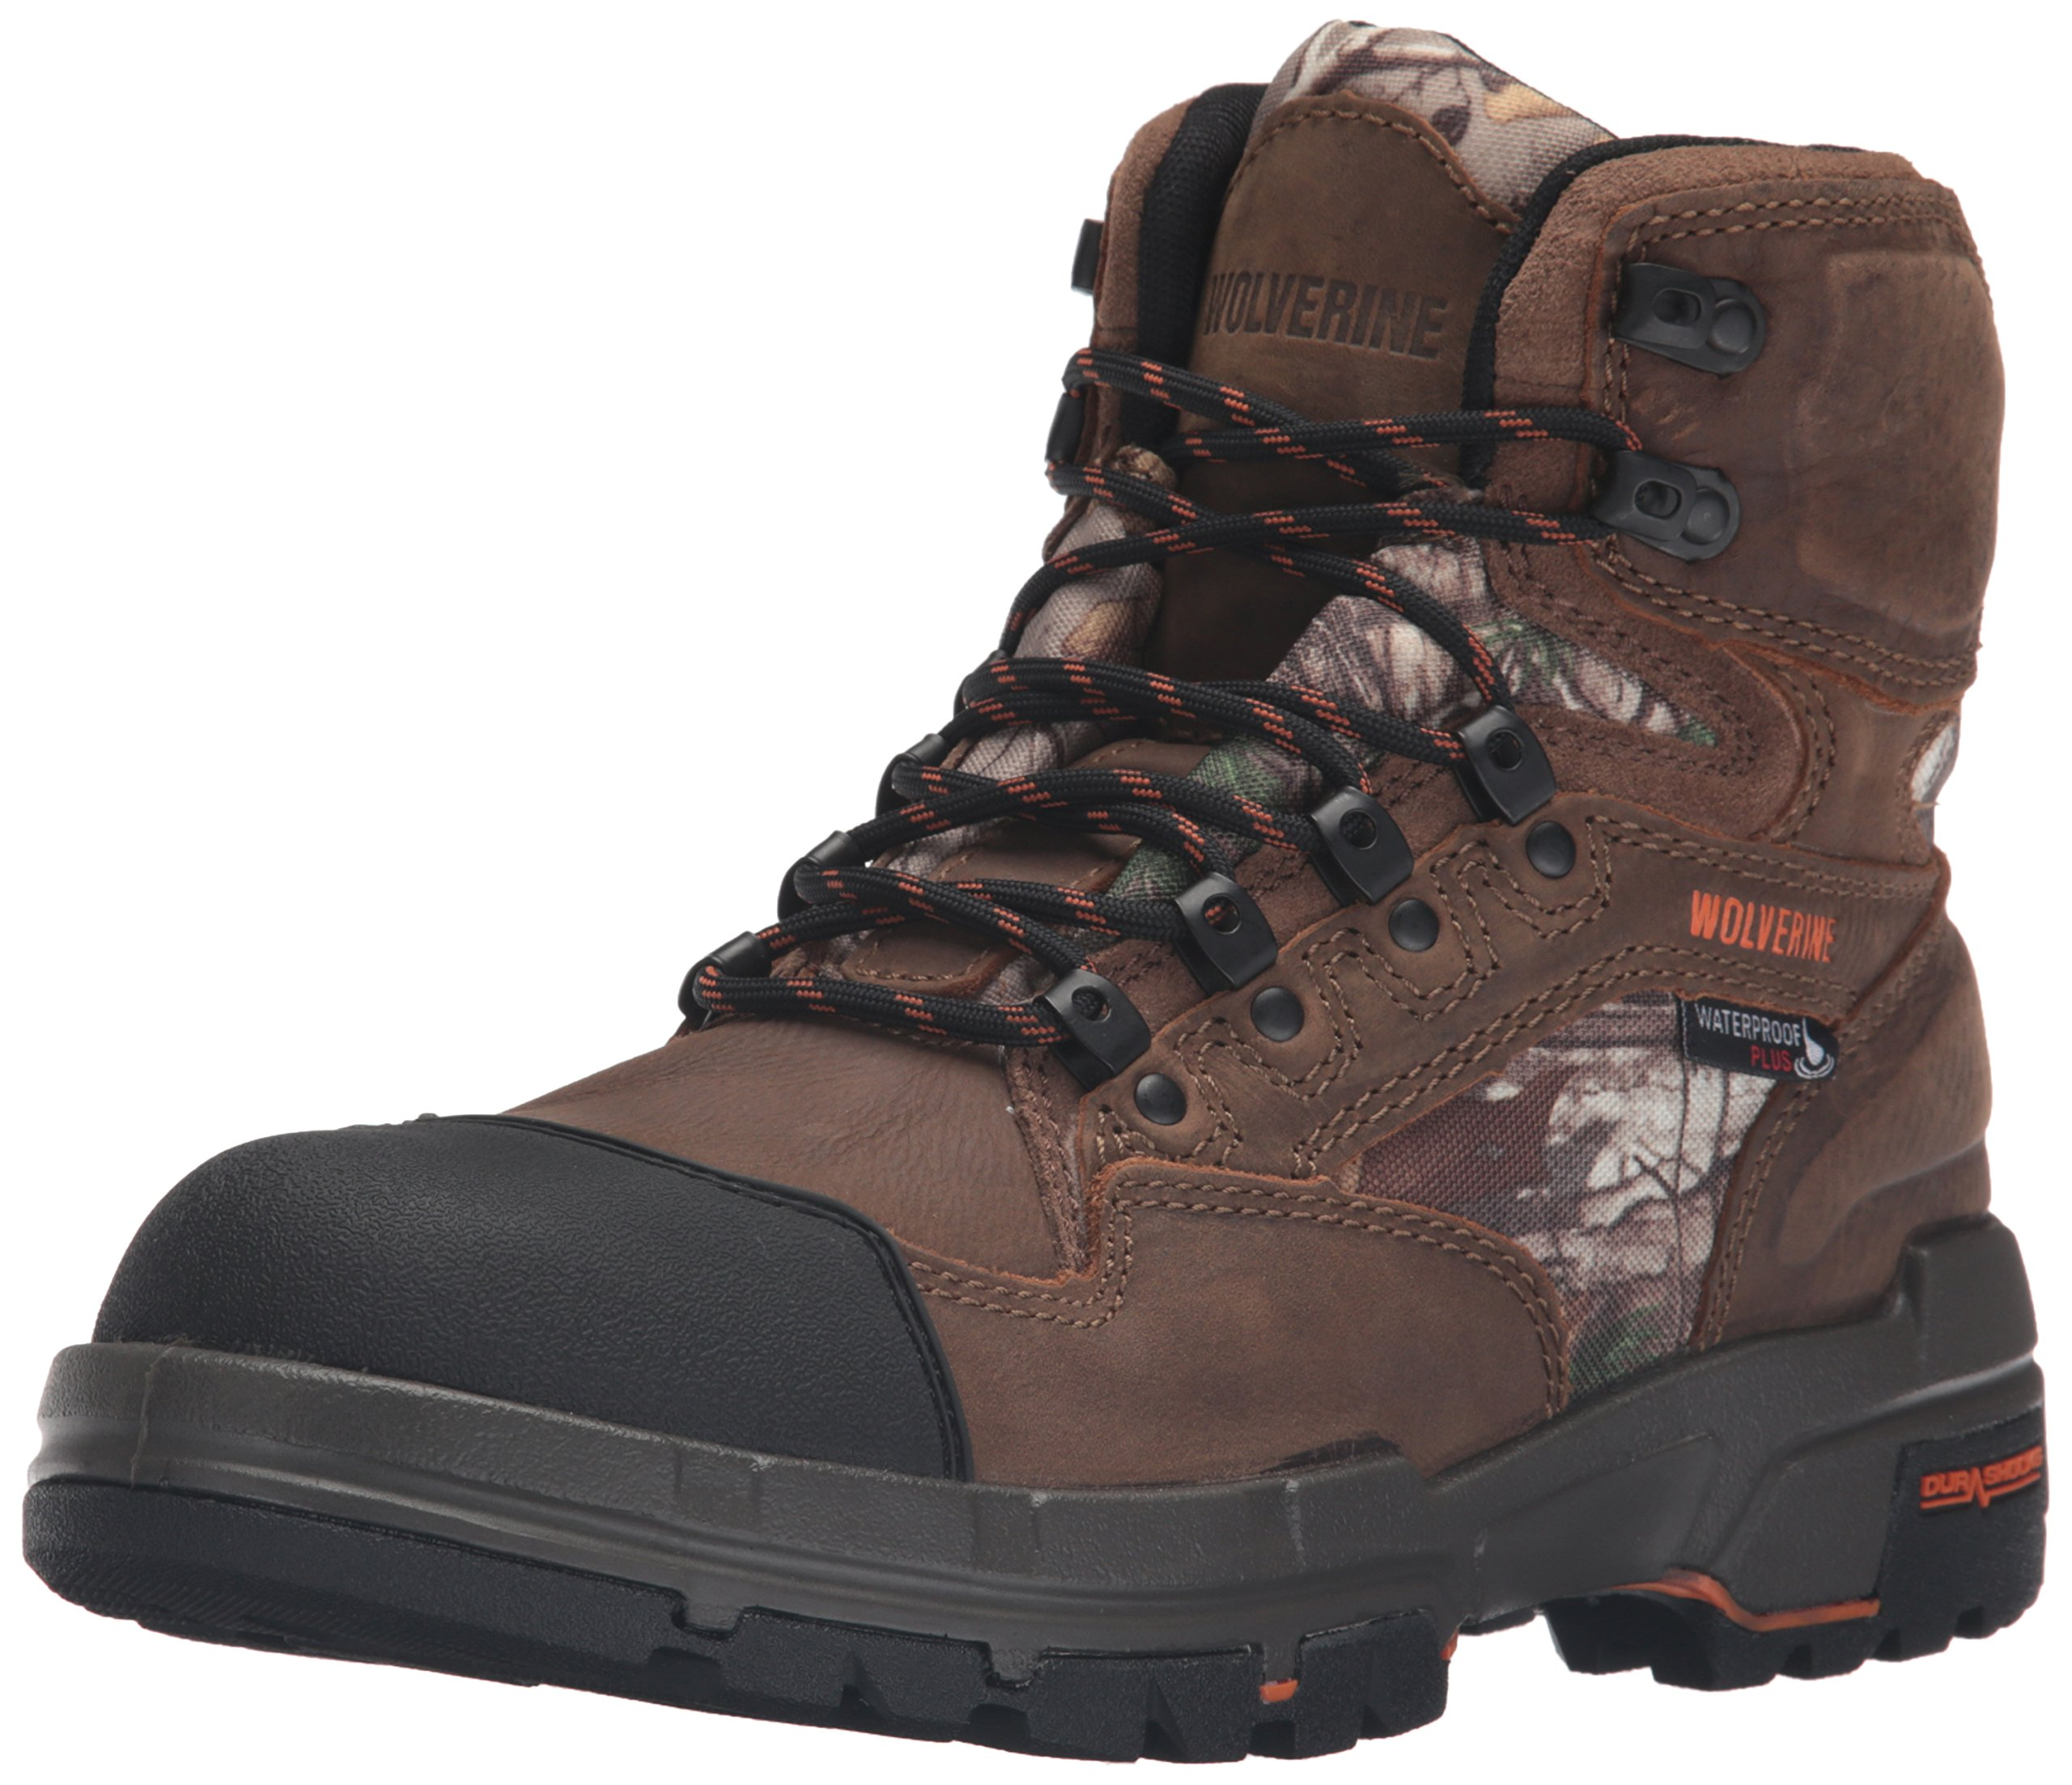 Wolverine Men's Claw Insulated Waterproof-M Hunting Boot, Brown/Realtree, 11 M US by Wolverine